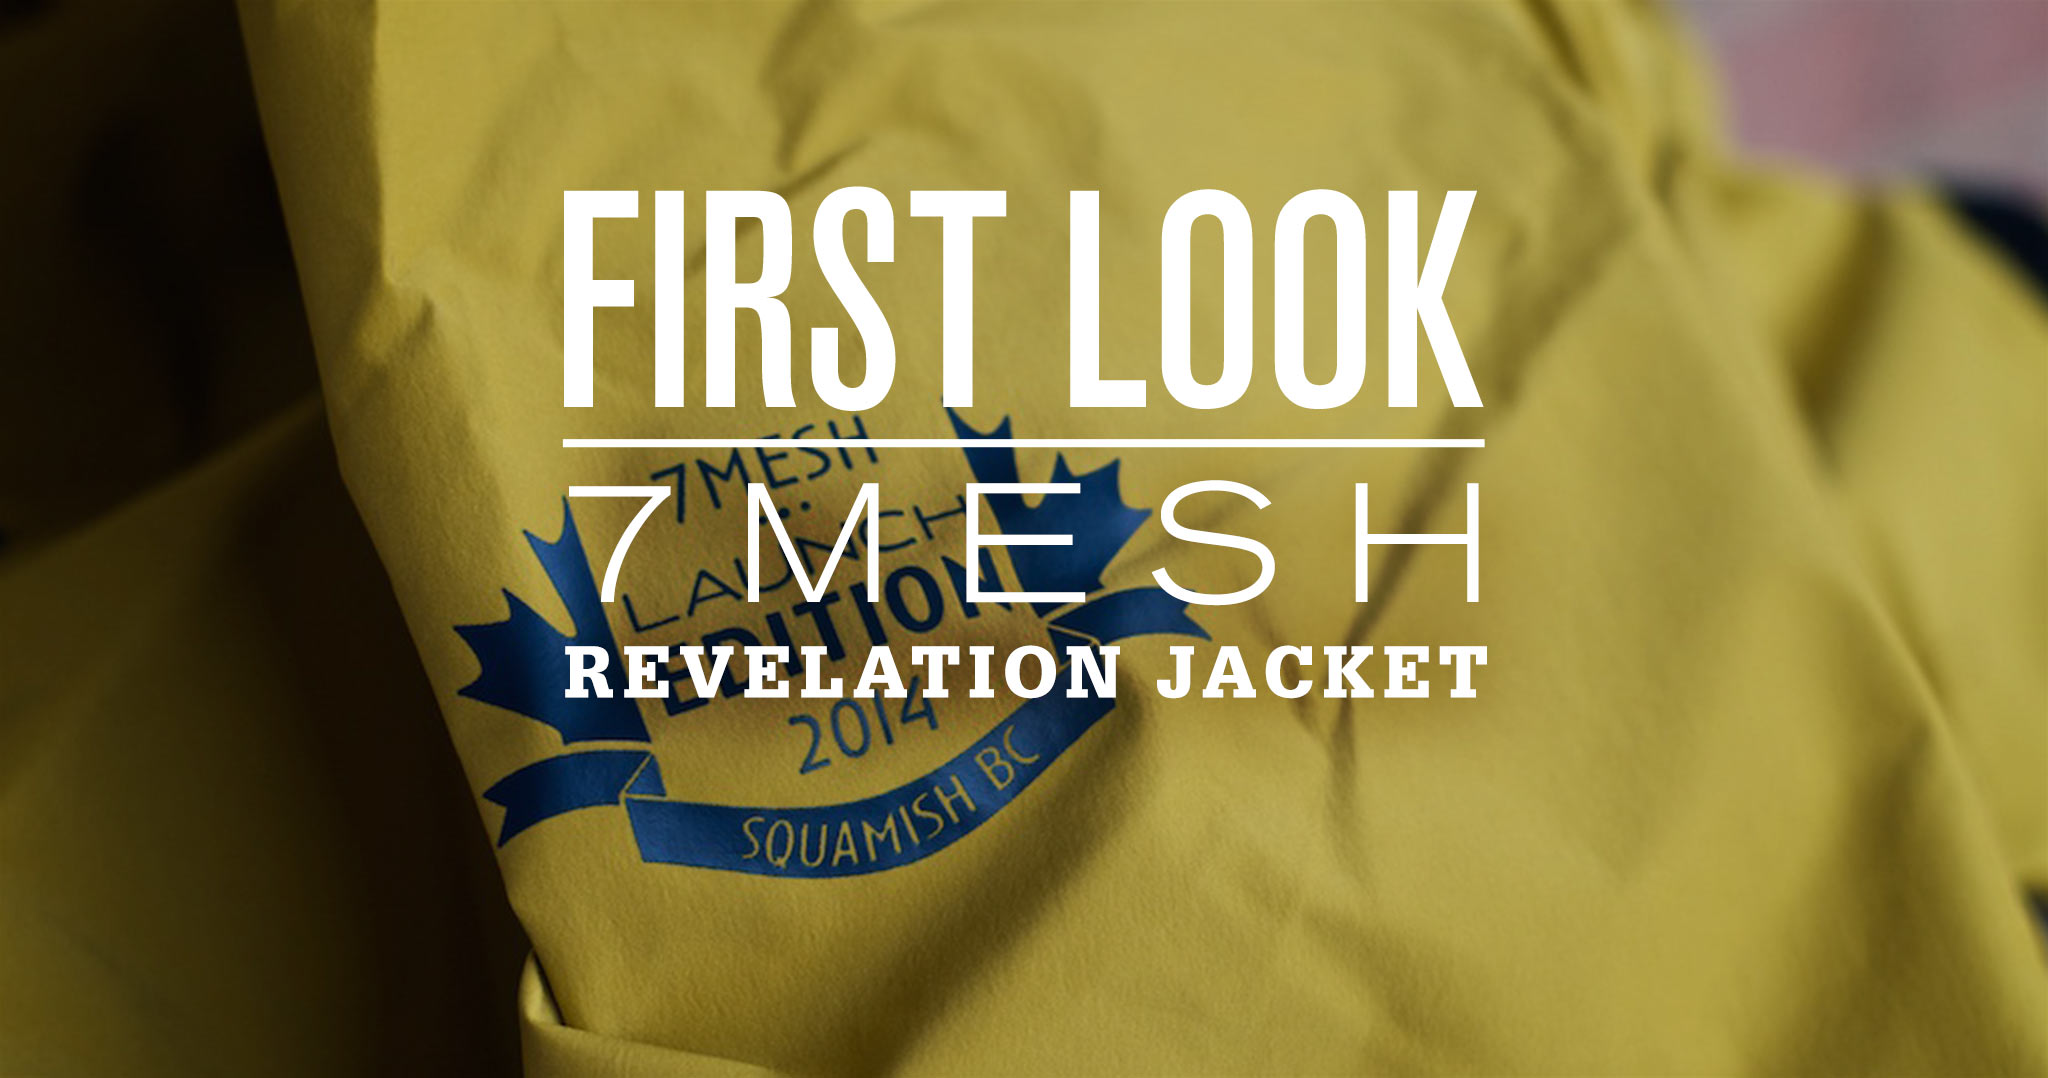 First Look: 7mesh Revelation Jacket Launch Edition